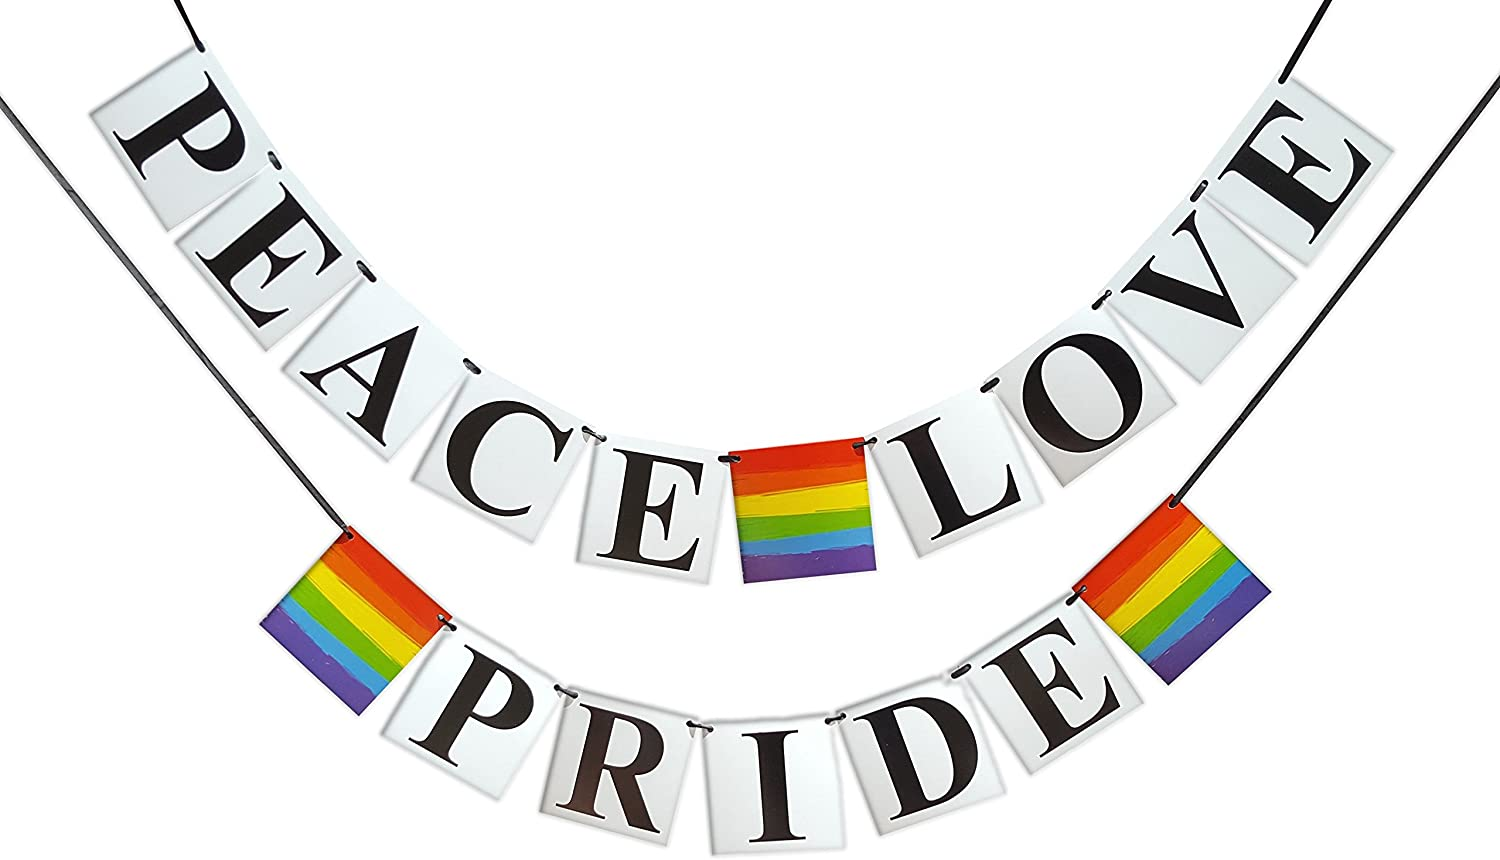 Peace, Love, Pride Banner - Gay Pride Flag Themed, Rainbow Colored - Gay, Lesbian, LGBT Party Decoration